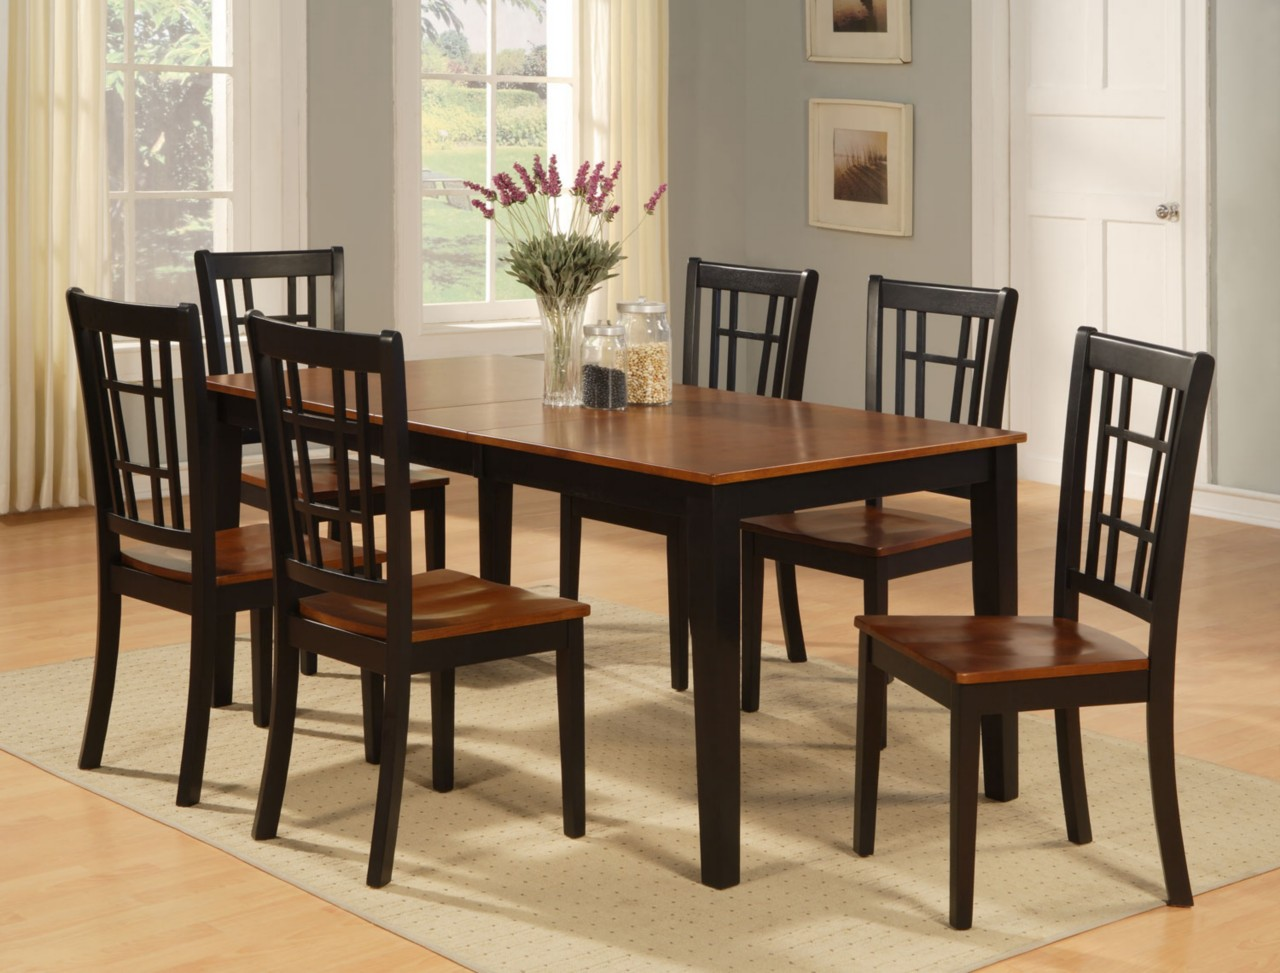 dinette kitchen dining room set 7pc table and 6 chairs ebay homelegance ohana 5 piece dining set in antique white